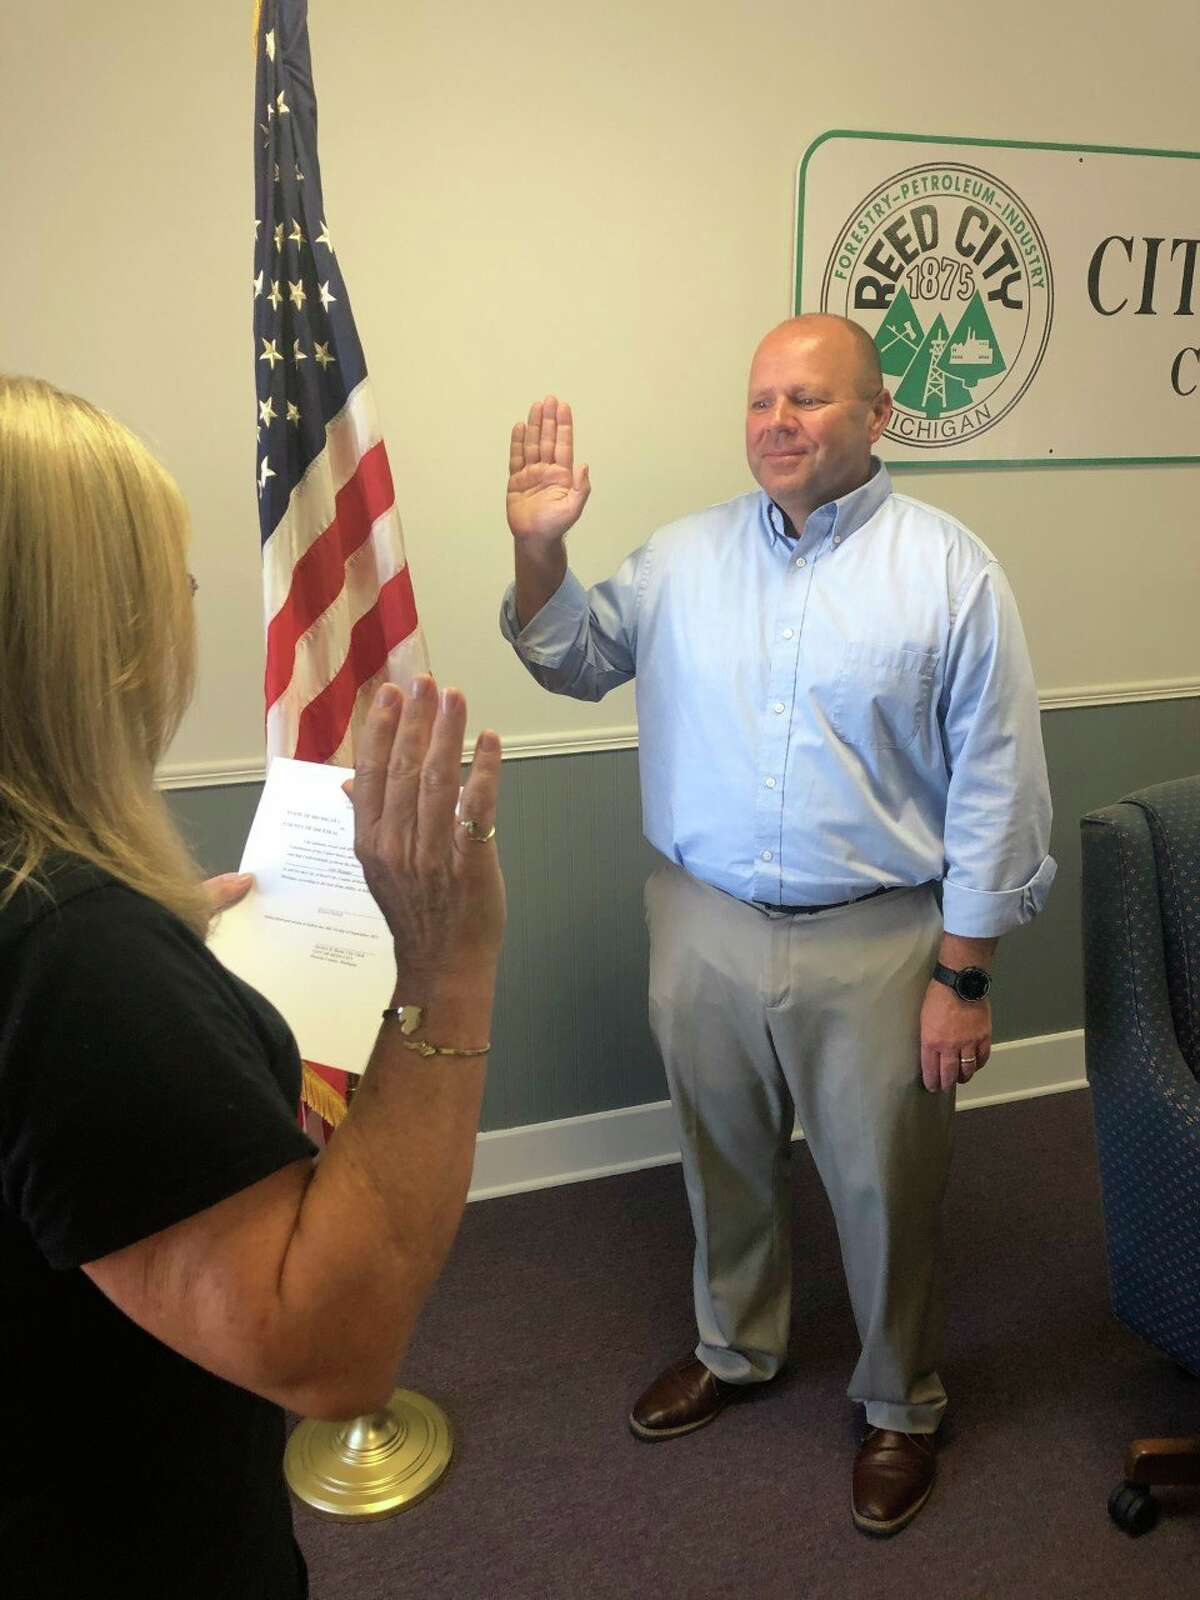 Rich Saladin takes the oath of office as the new city manager for Reed City effective Sept. 1. (Submitted photo)